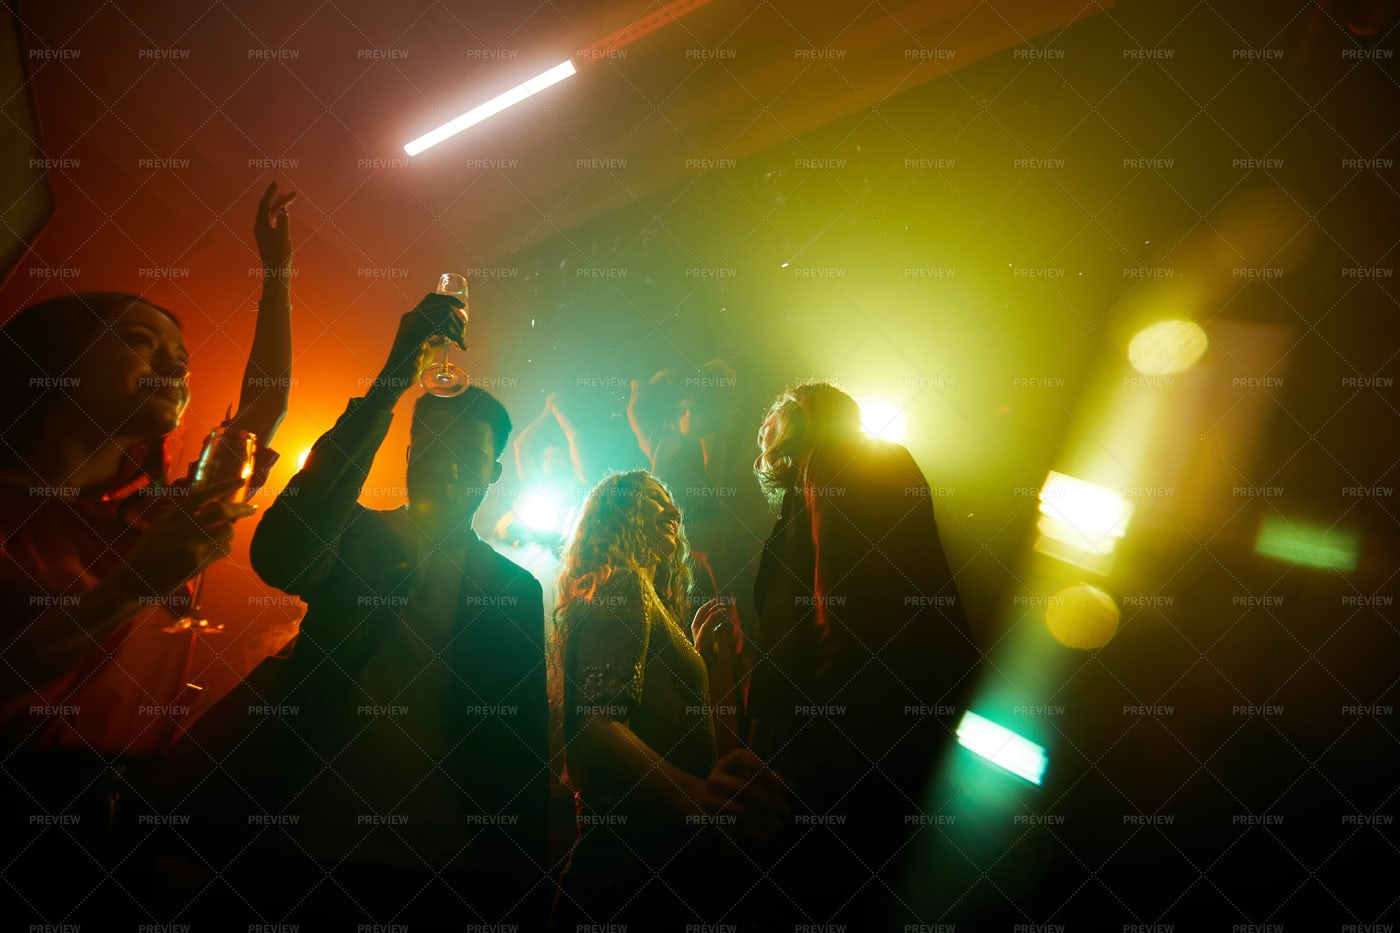 People Dancing In Disco Lights: Stock Photos